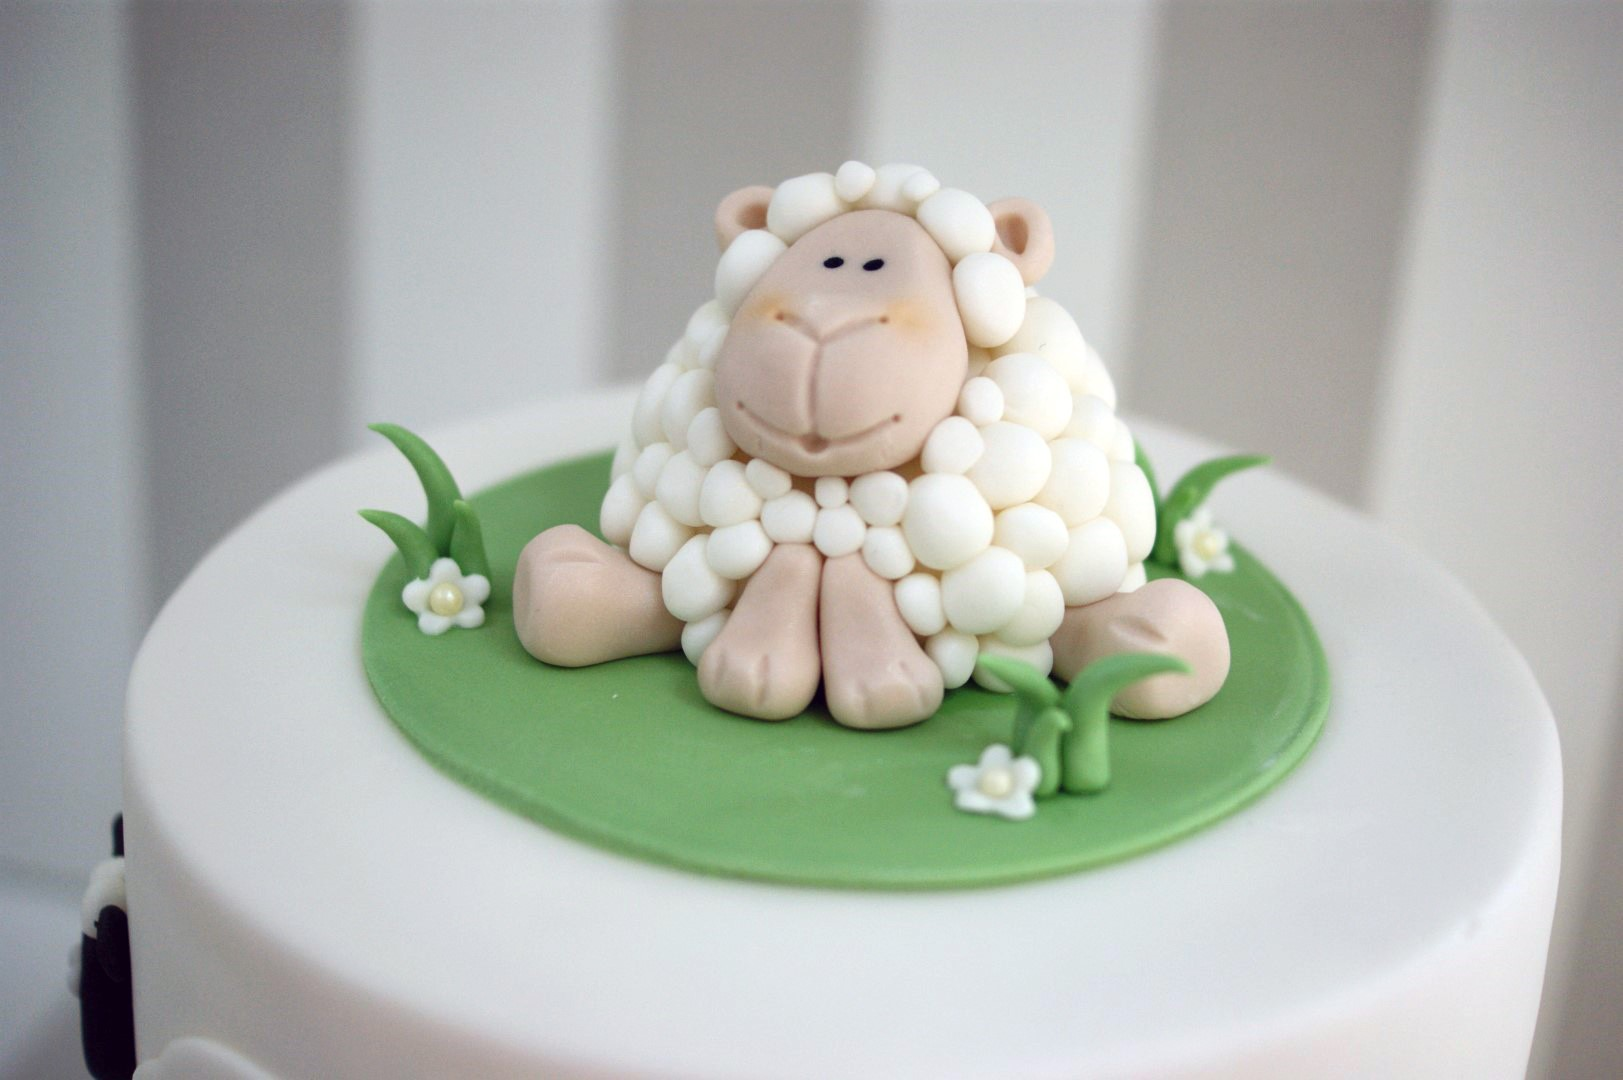 Baby Shower Cake Decorations Next Day Delivery